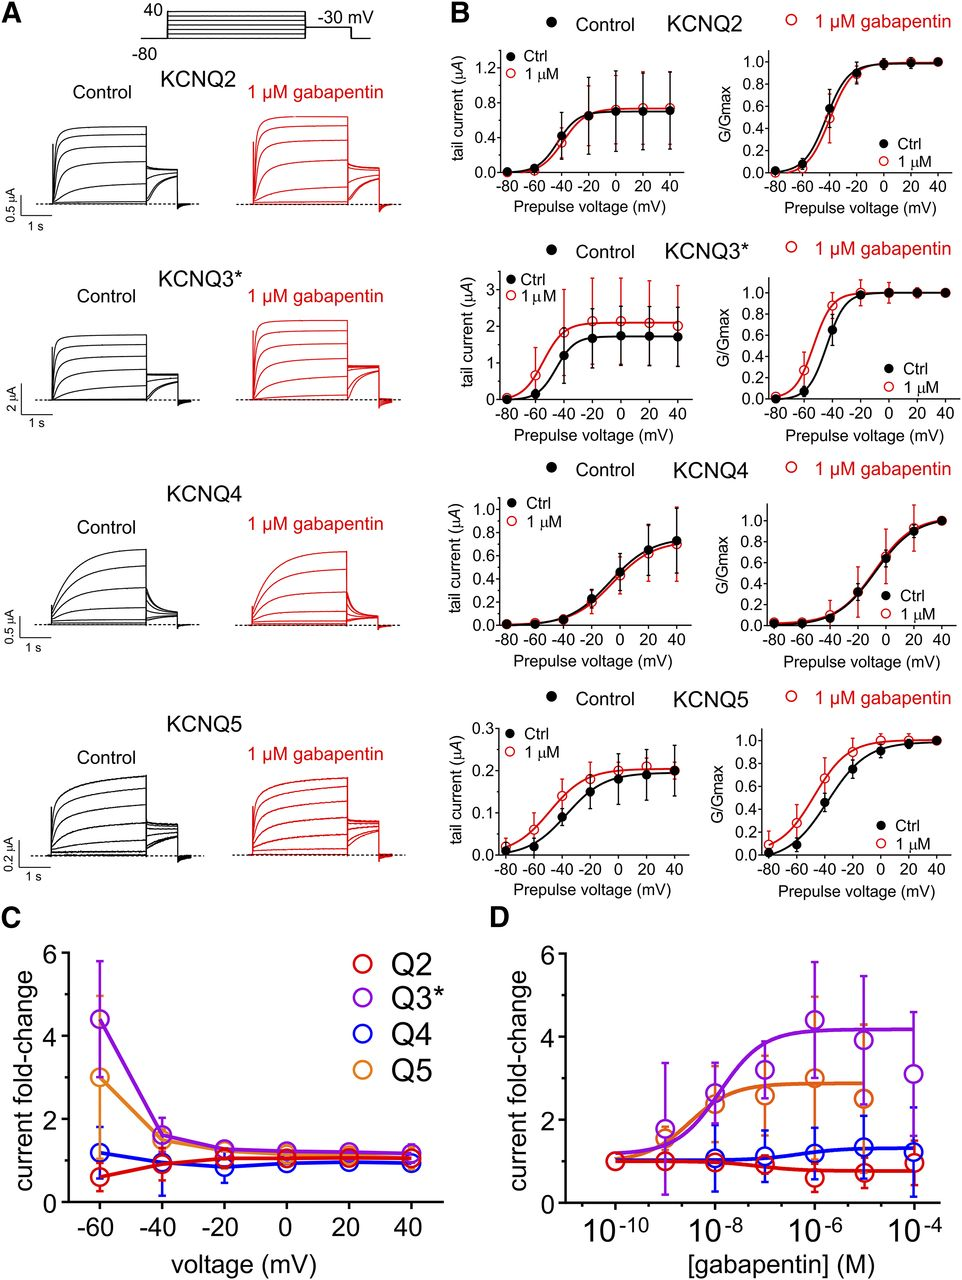 Gabapentin Is a Potent Activator of KCNQ3 and KCNQ5